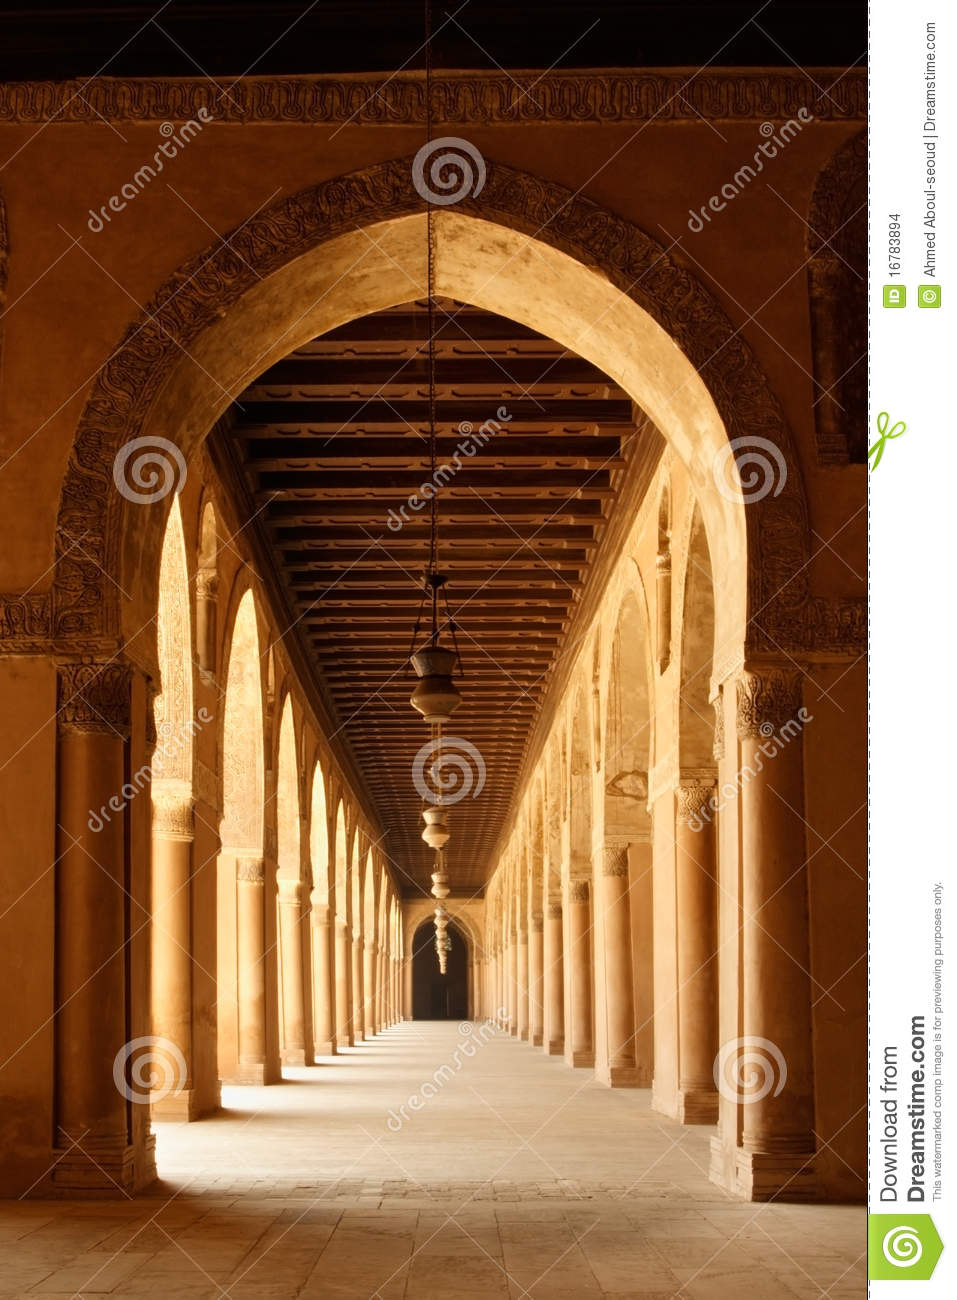 Arches of Ahmad Ibn Tulun Mosque in Cairo, Egypt